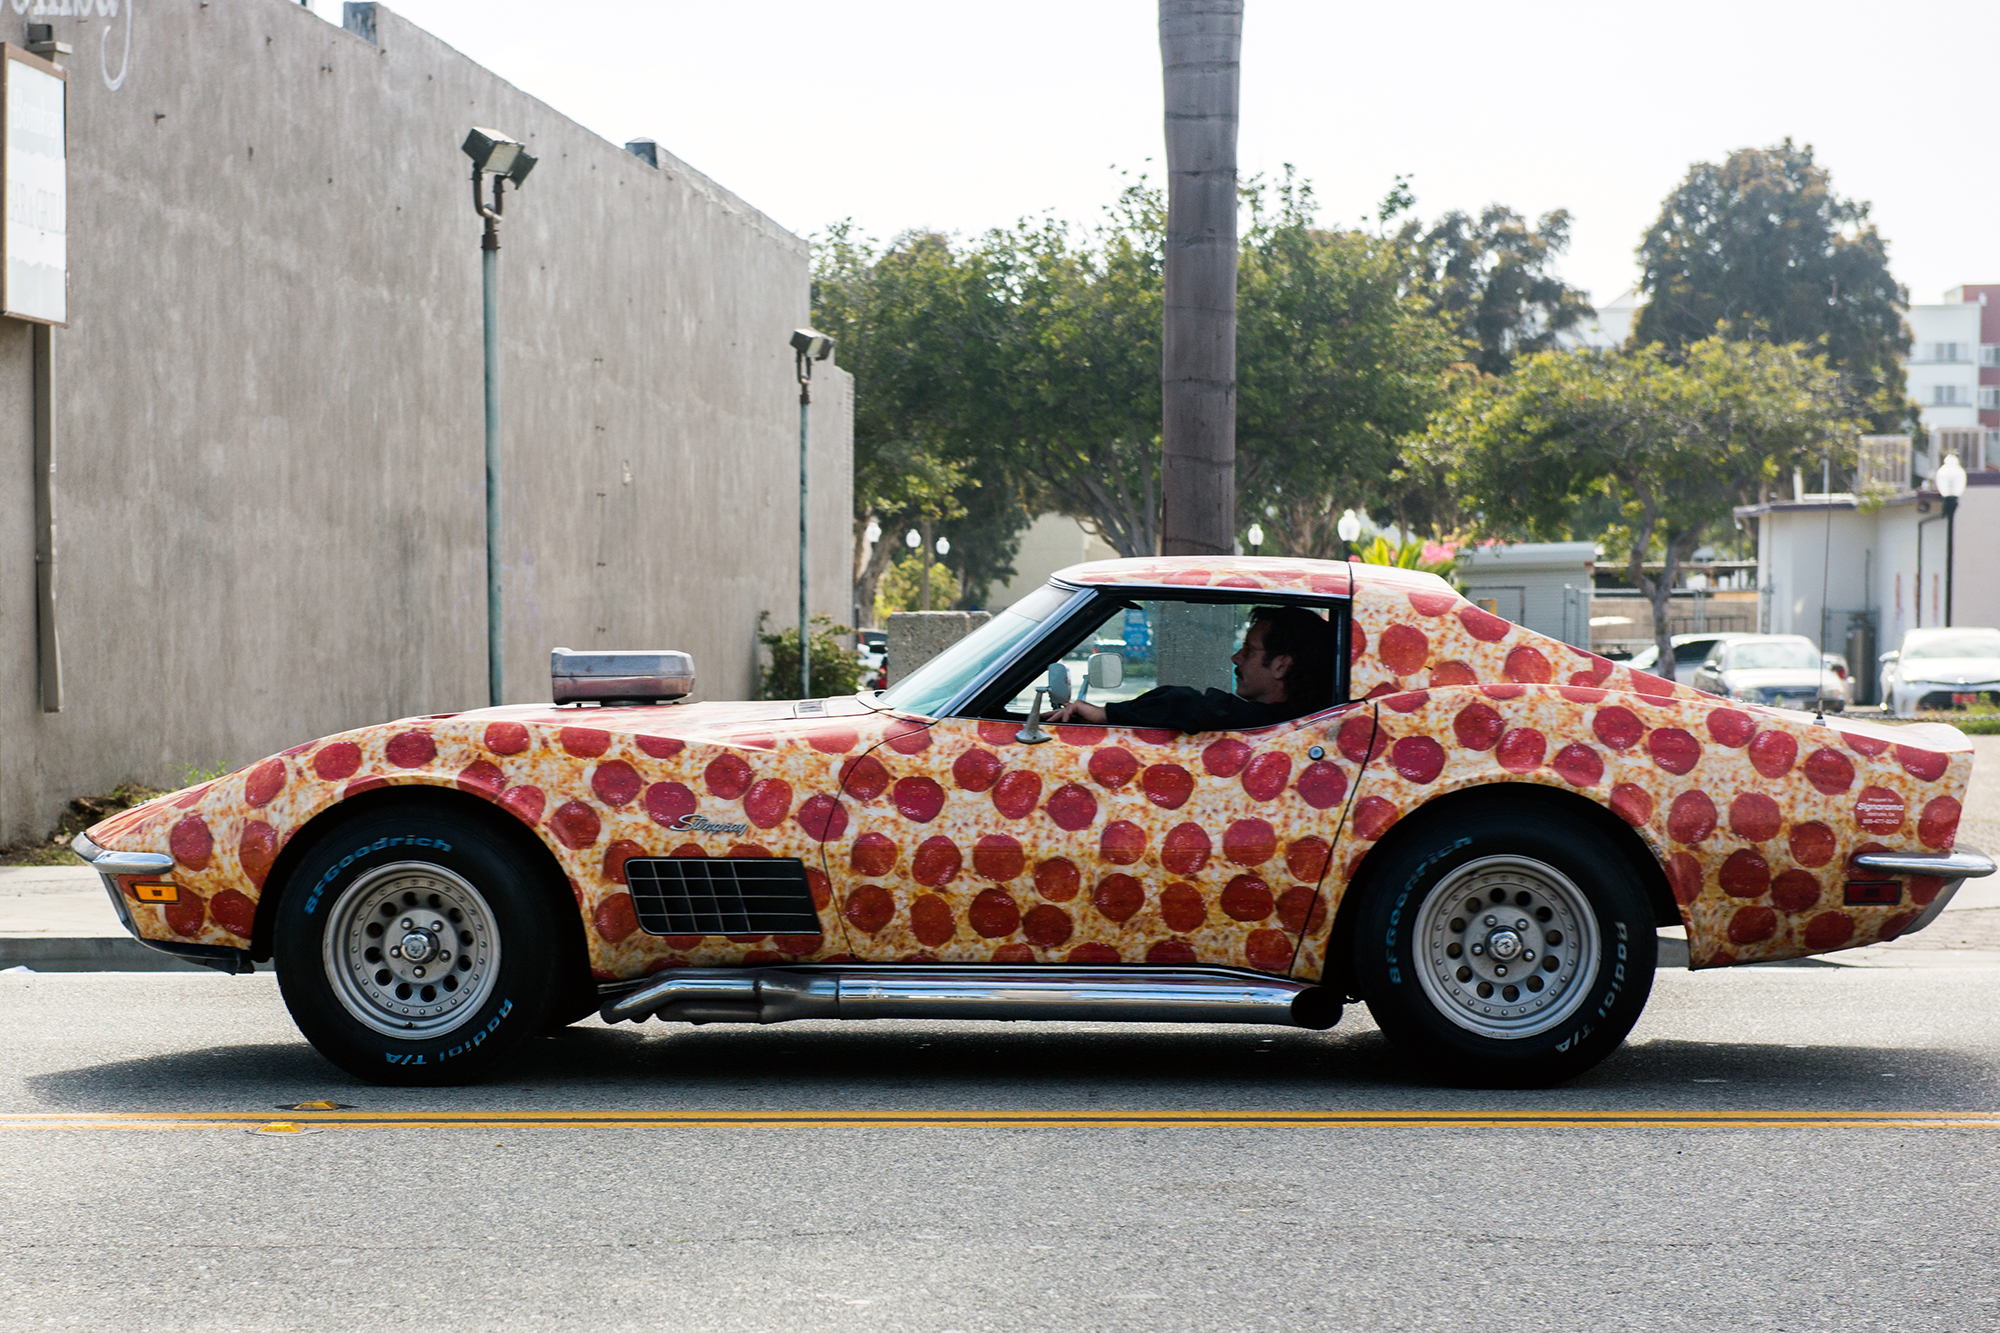 And last but not least, the incredible Sting Ray Corvette, covered in pepperoni pizza. AMAZING.